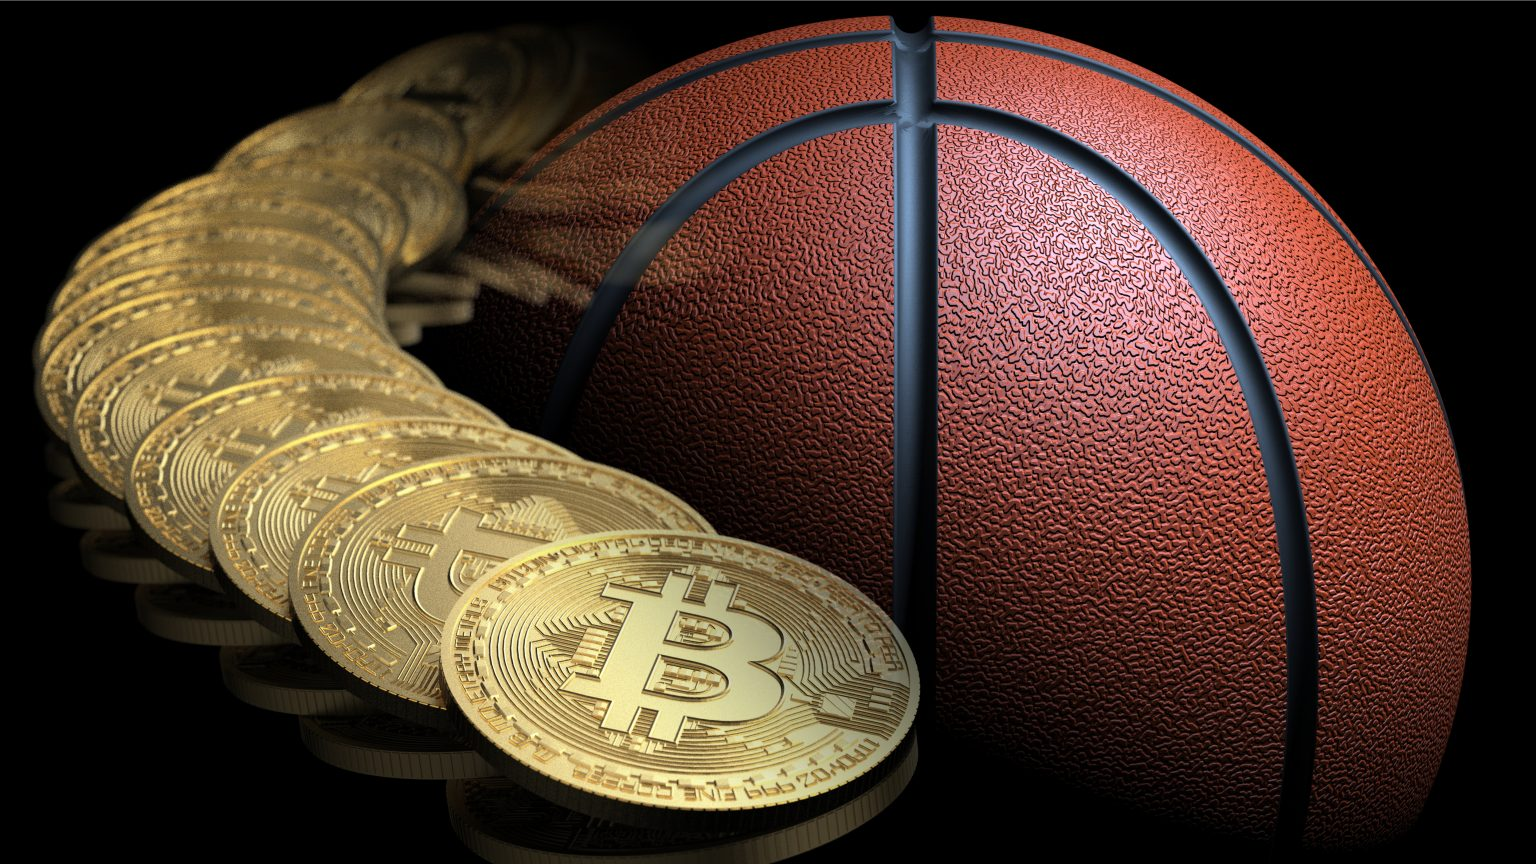 Basketball Players in Canada to Be Paid in Bitcoin www.nicenic.net